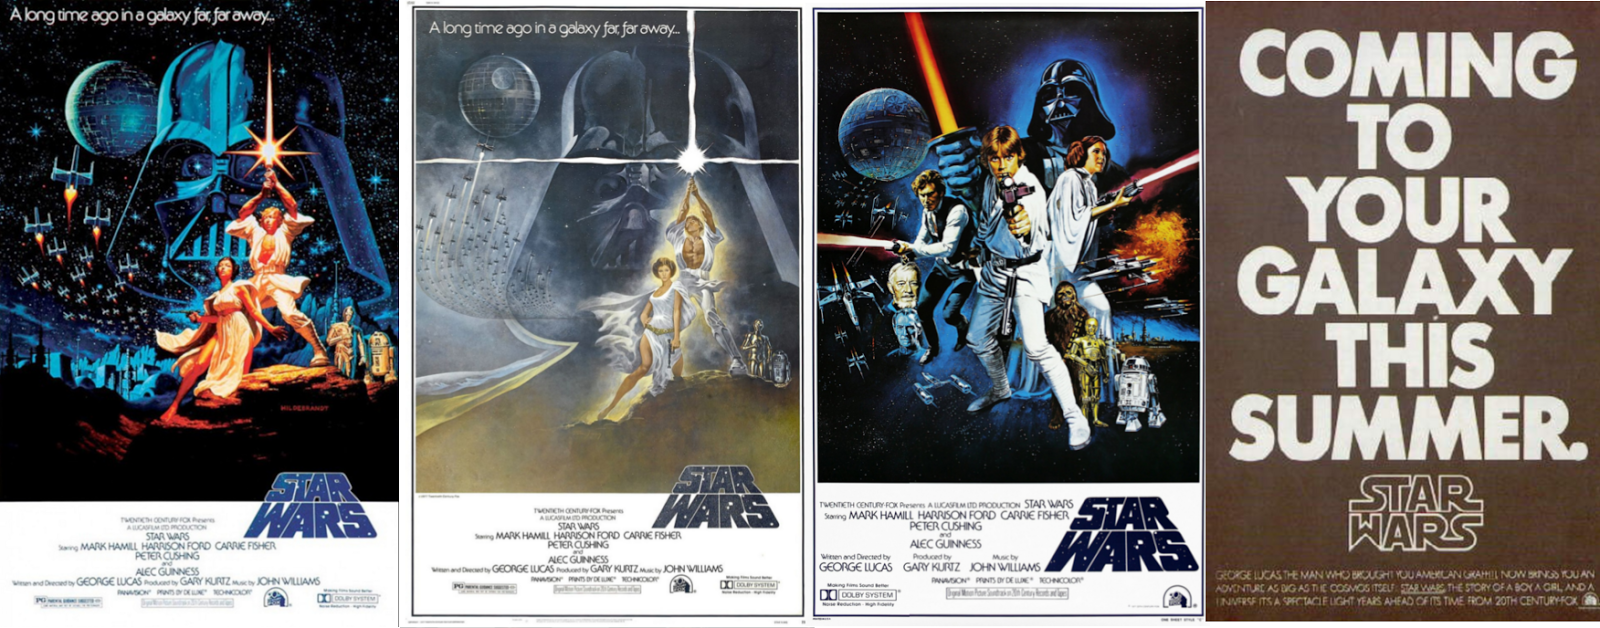 star wars movie posters as iconic as the movies in a